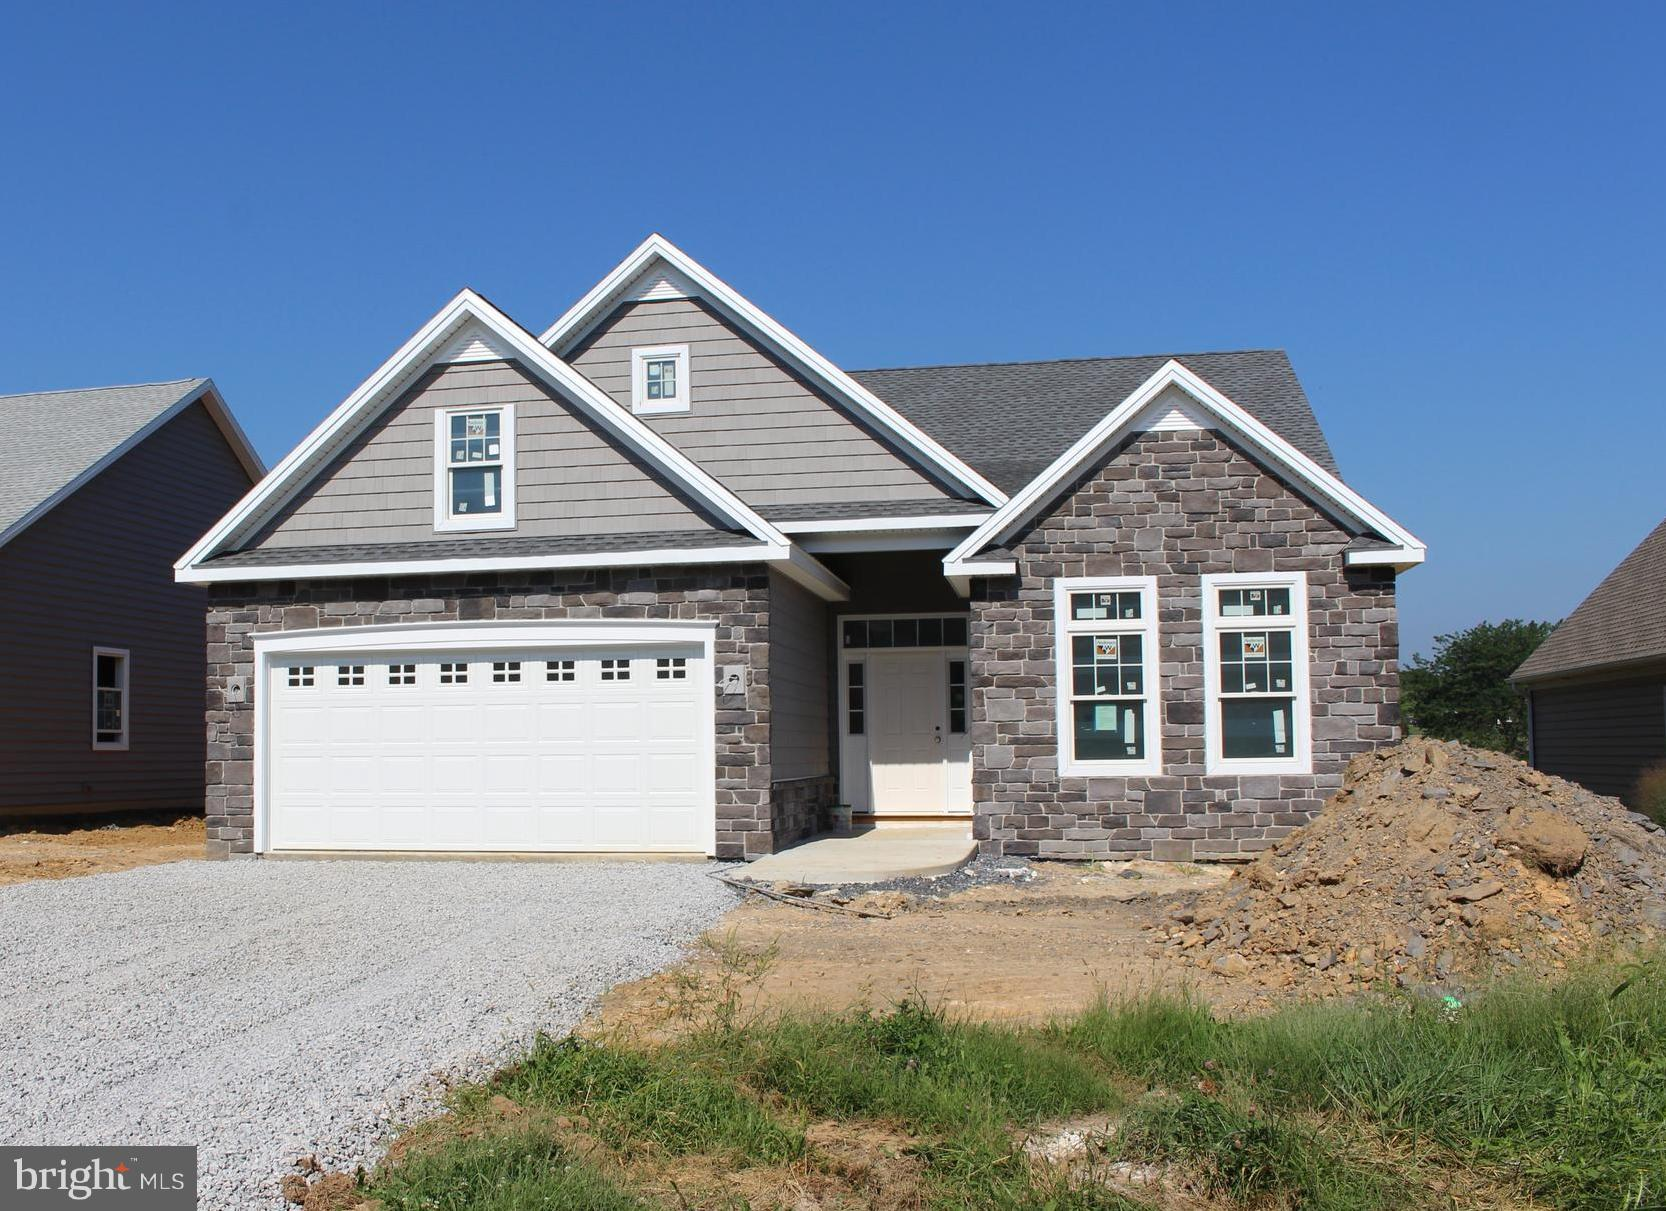 6940 OLD COURSE ROAD, FAYETTEVILLE, PA 17222